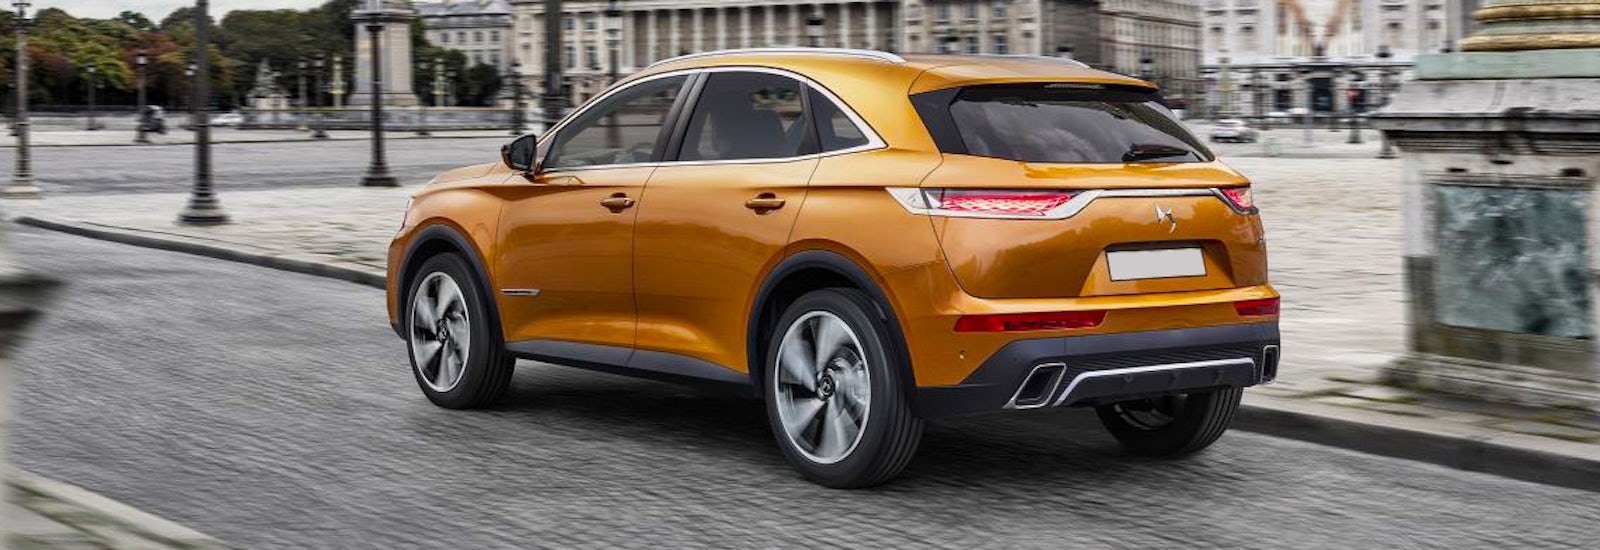 new ds7 crossback mid size suv captured undisguised new autos post. Black Bedroom Furniture Sets. Home Design Ideas